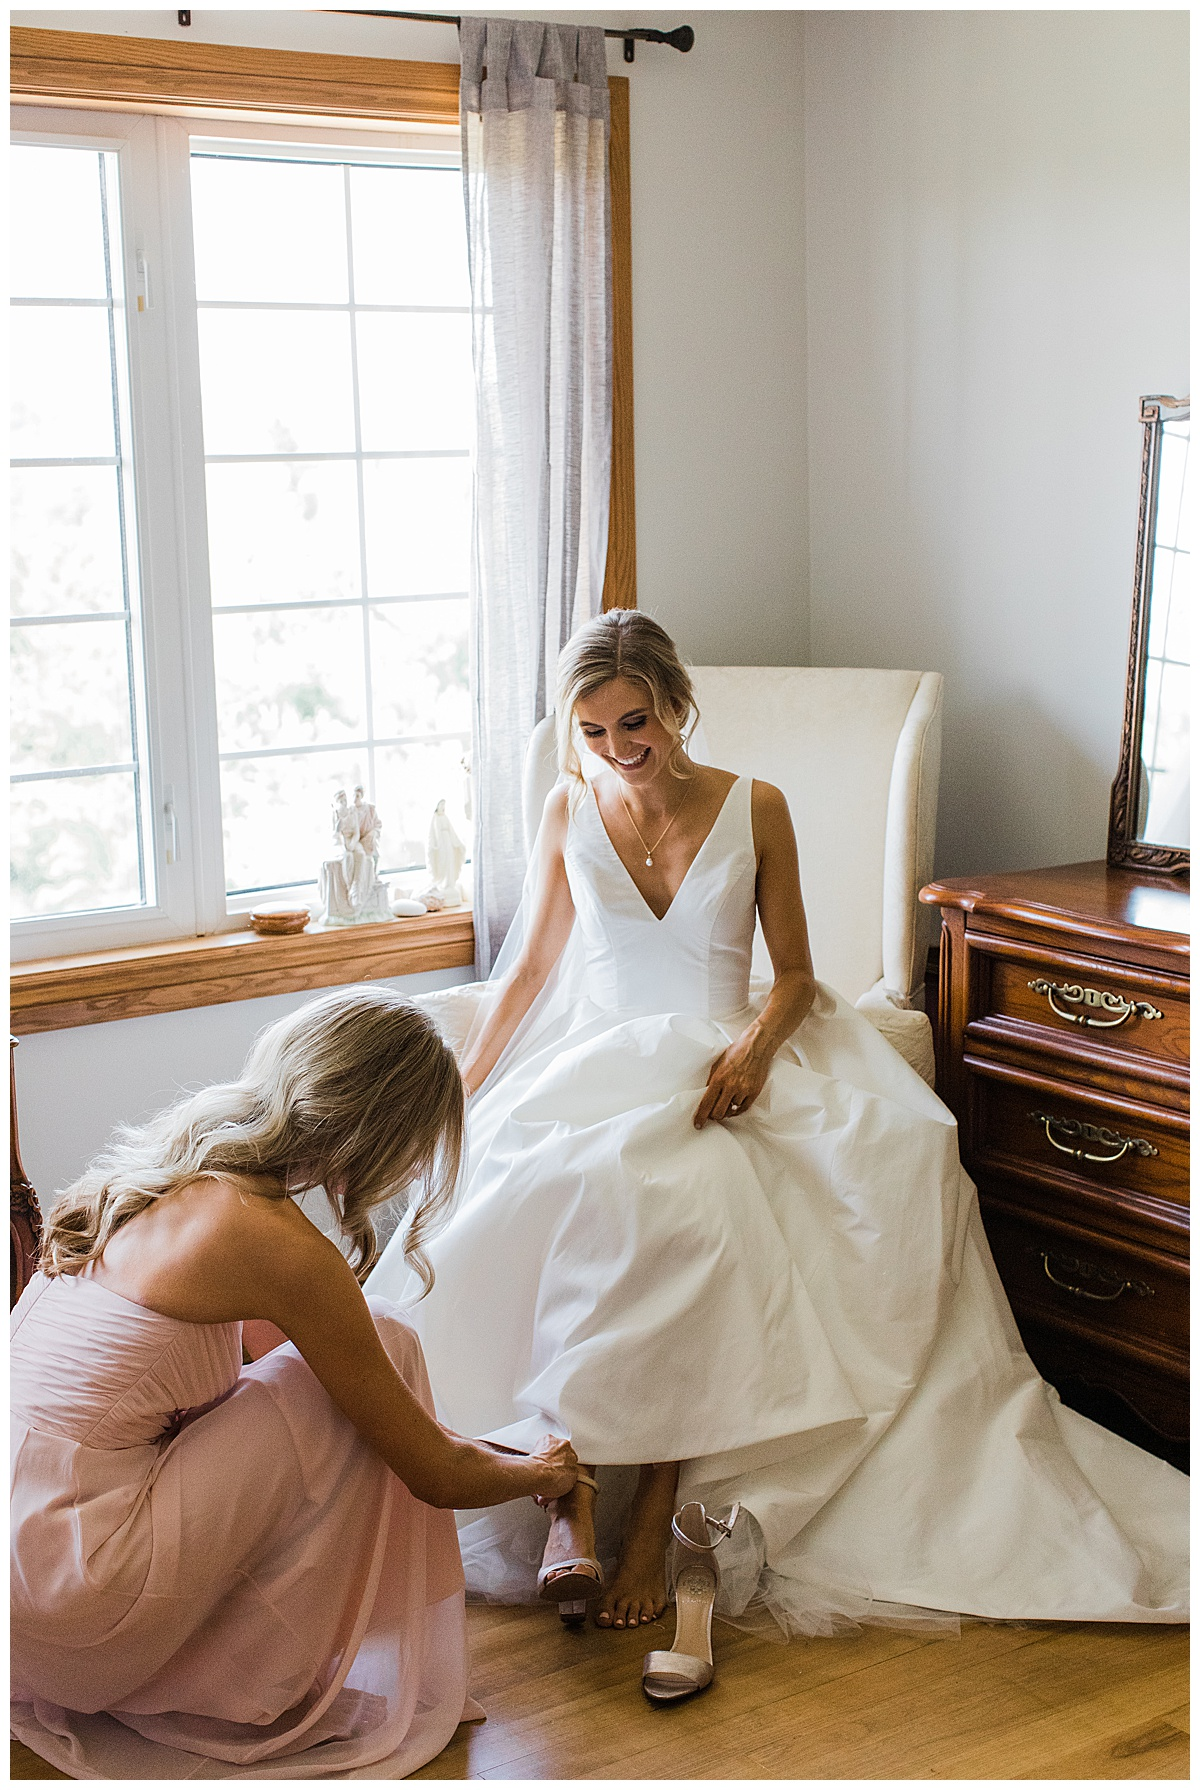 Bride sitting in chair by window while bridesmaid helps her put her bridal heels on  Georgetown, Ontario wedding  Toronto wedding photographer  3photography